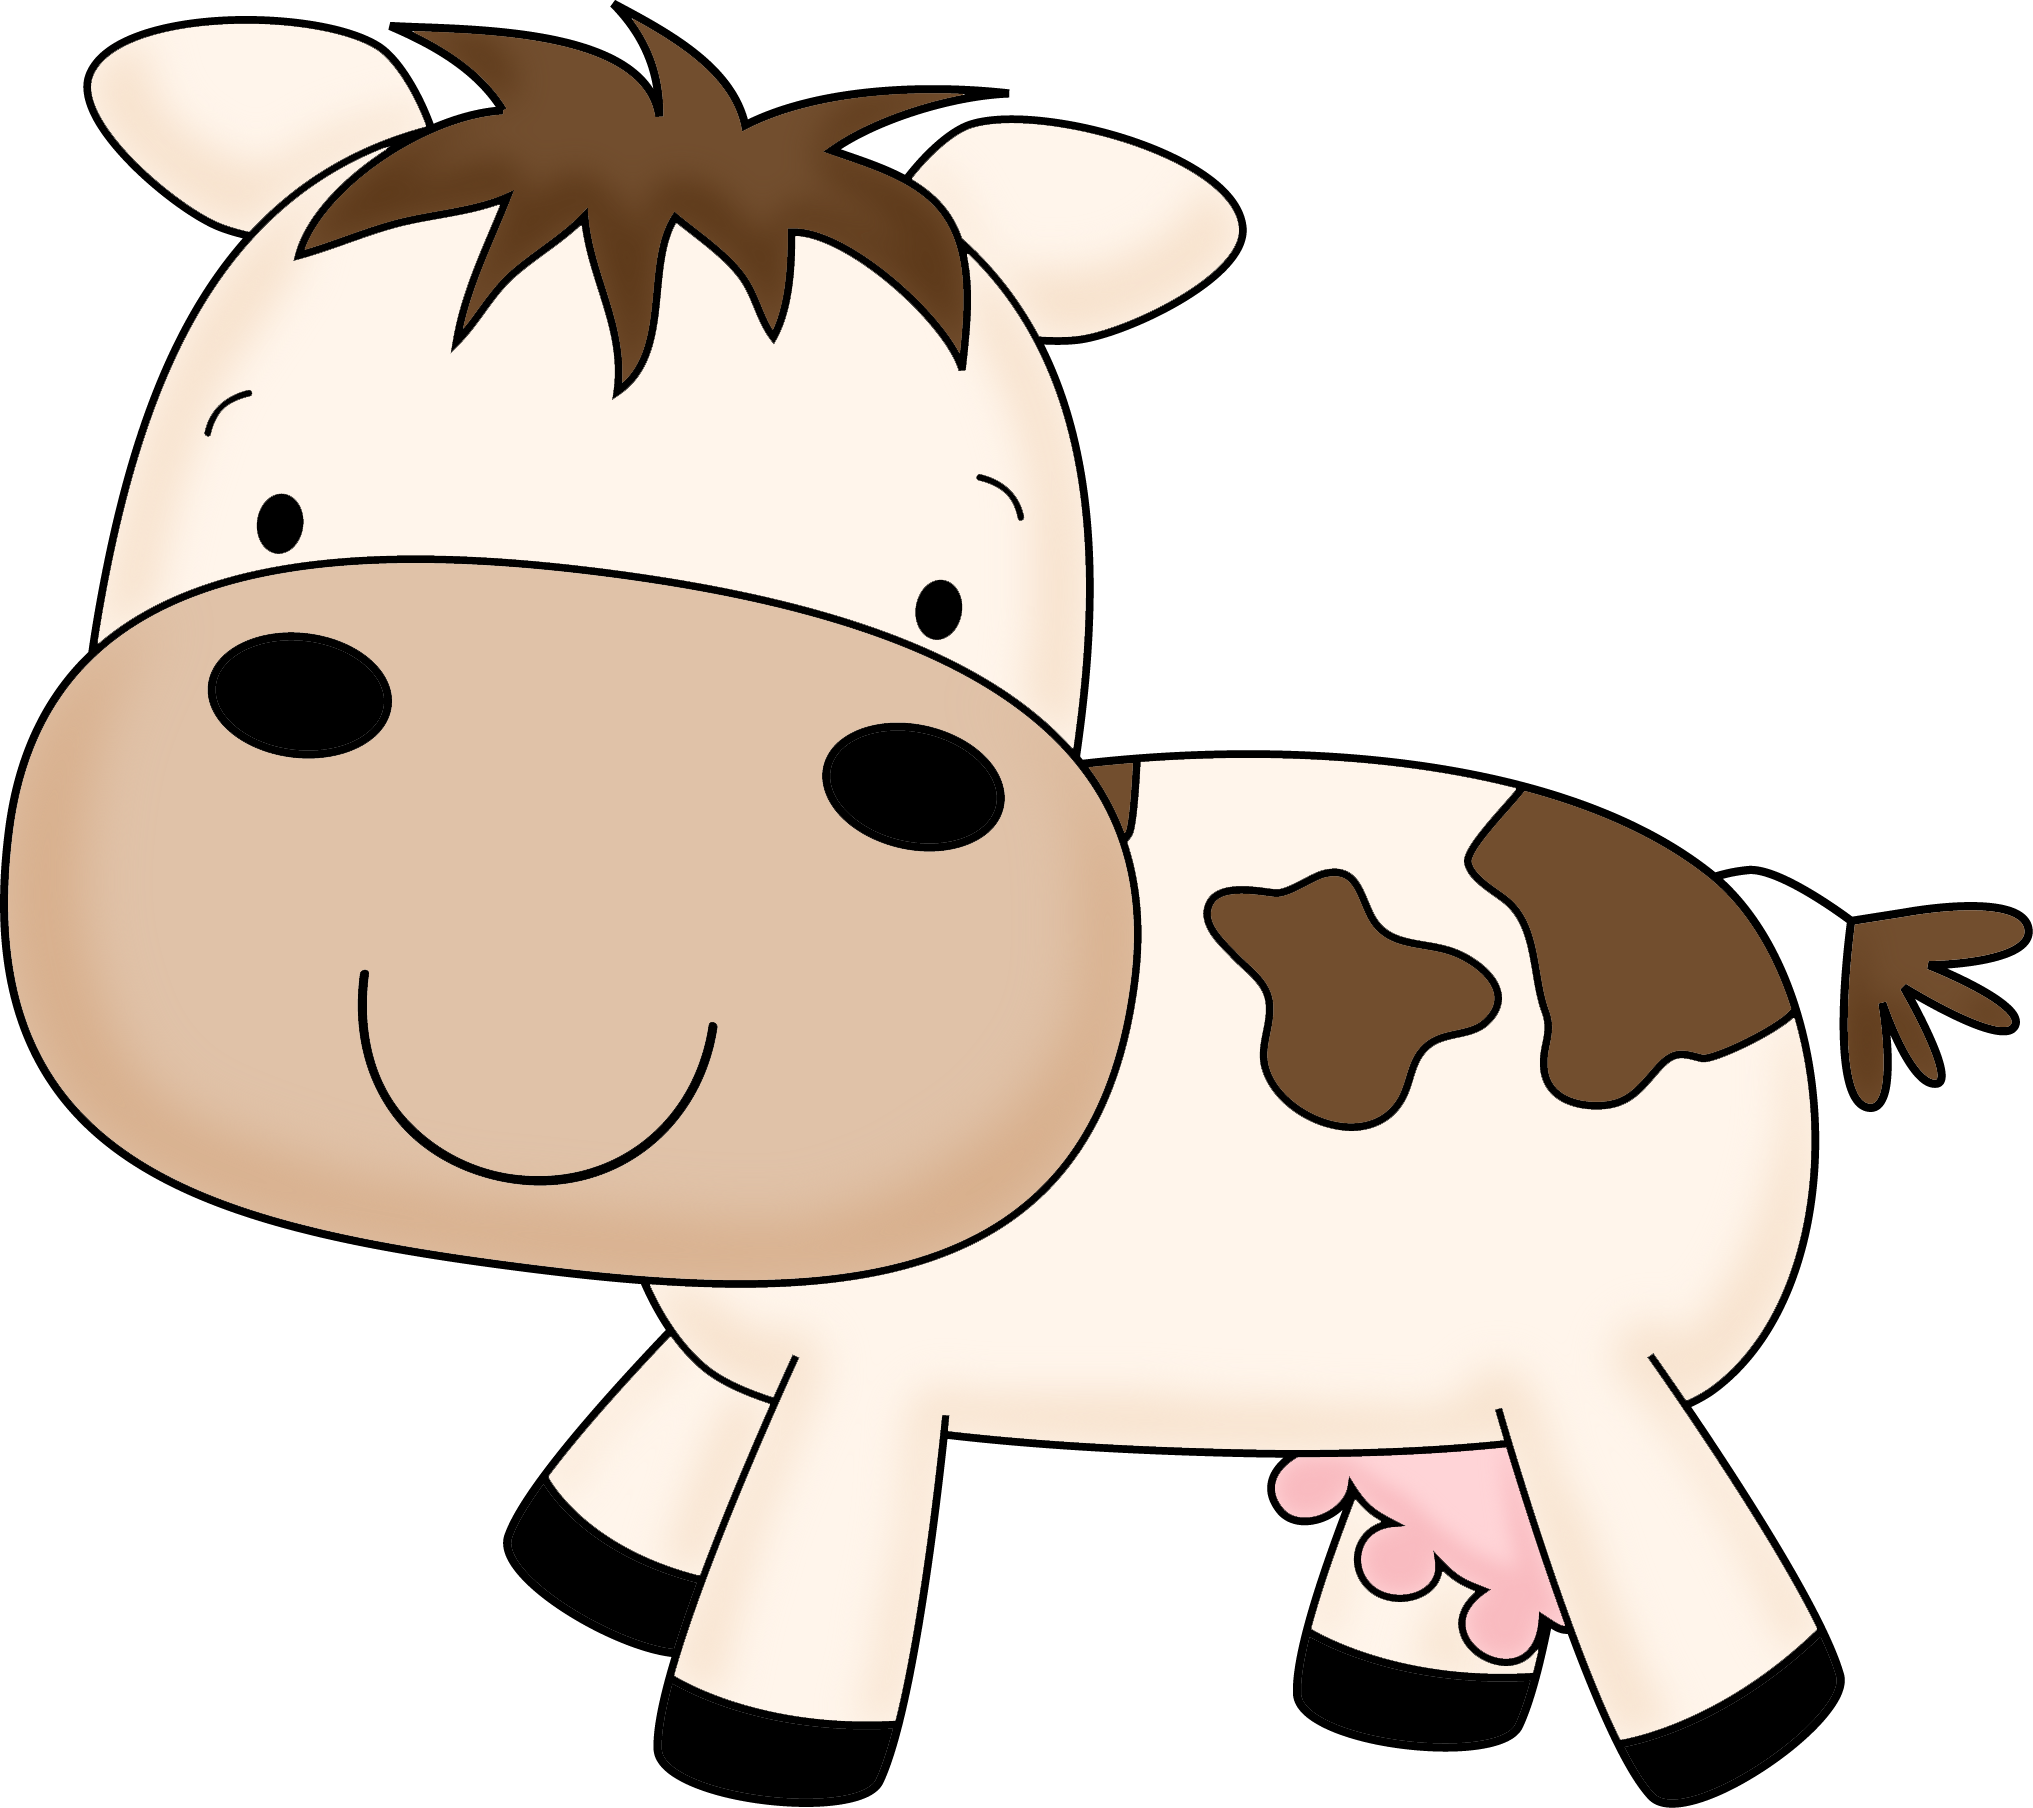 Cows clipart fence. Farm animals at getdrawings